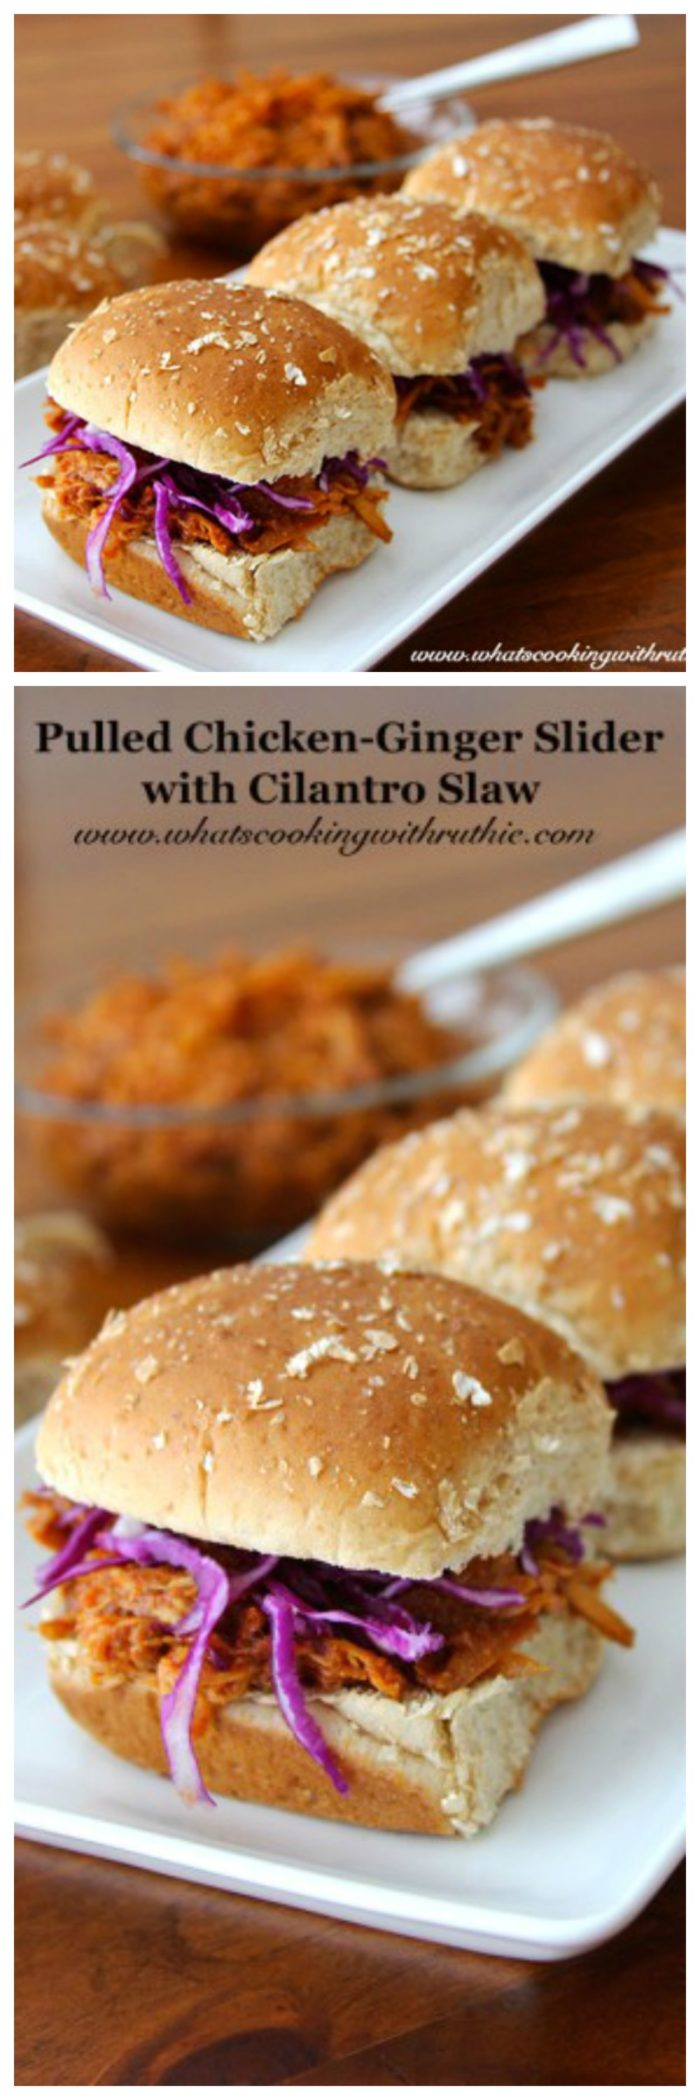 Pulled Ginger-Chicken Slider with Cilantro Slaw on www.cookingwithruthie.com is the perfect slow cooker appetizer or dinner!